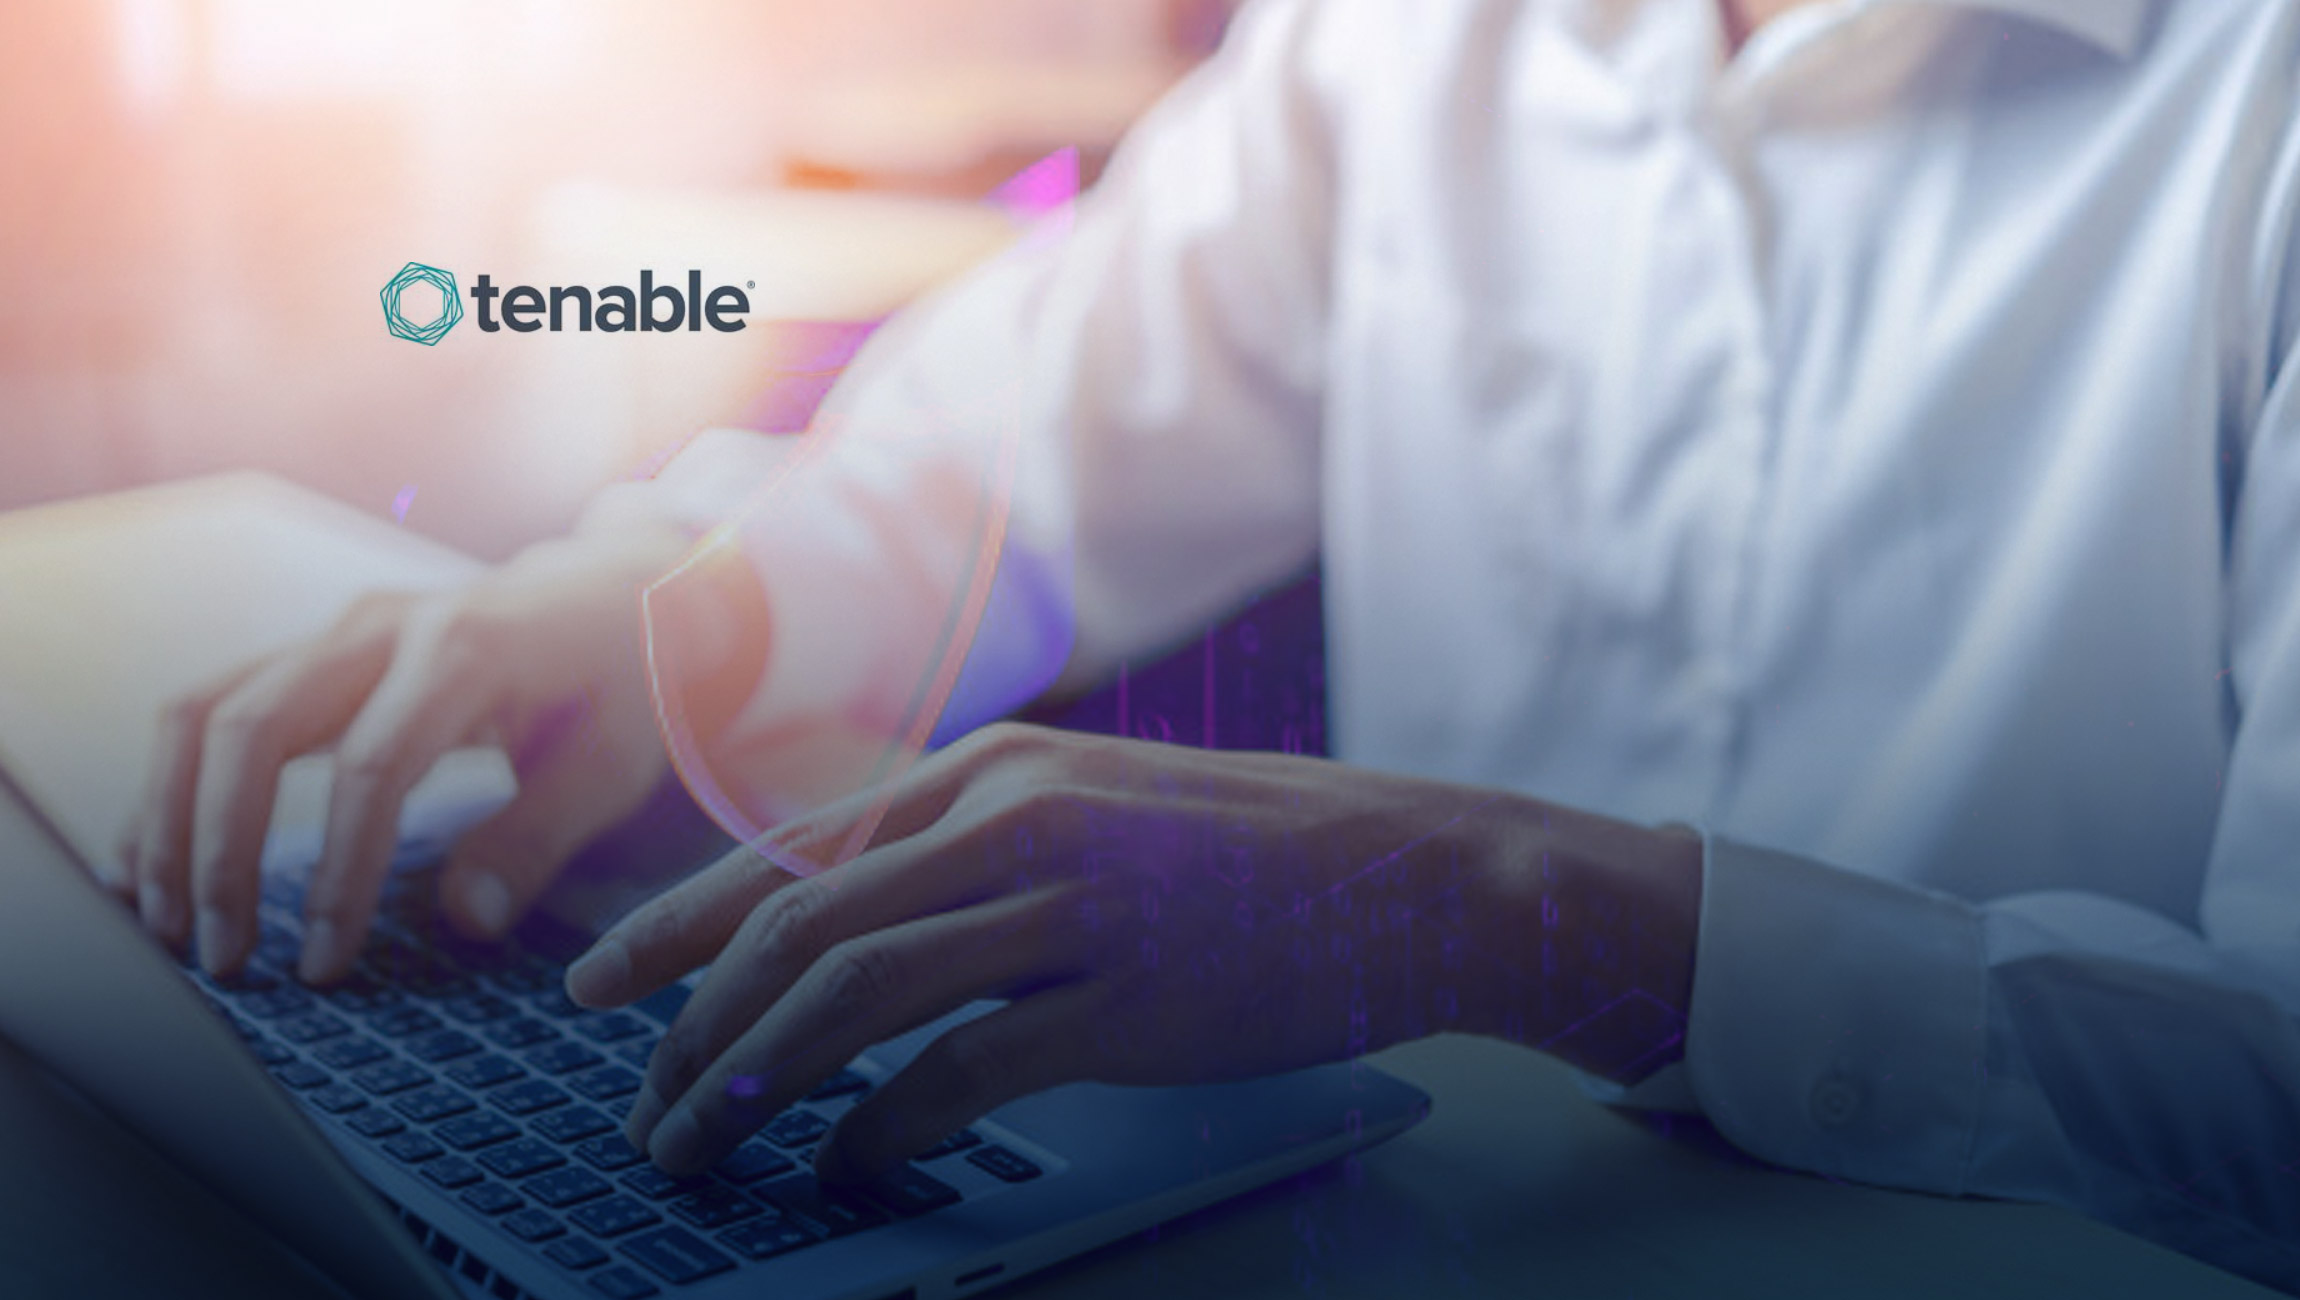 Tenable-Expands-Support-for-Latest-ServiceNow-Platform-Release-to-Enhance-Risk-Based-Vulnerability-Management-in-Security-Workflows